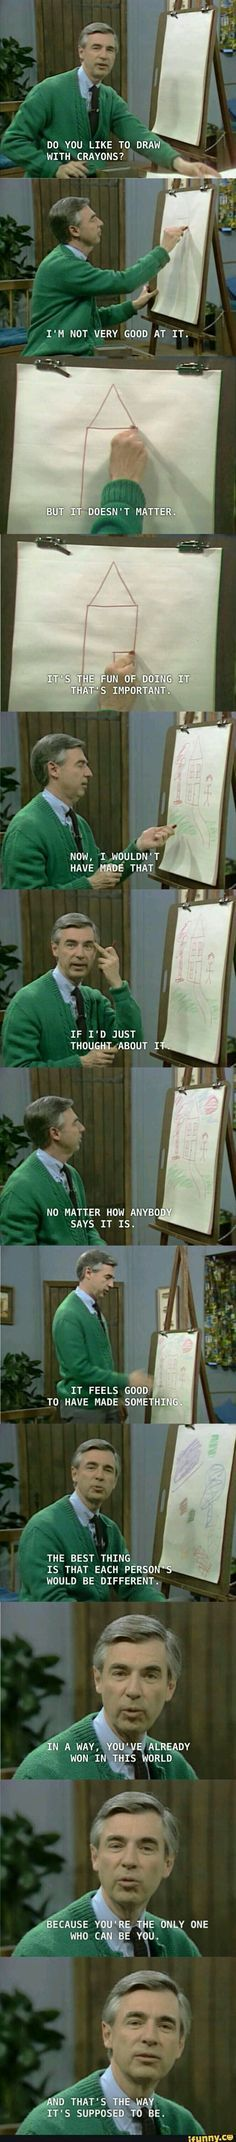 I'm pretty sure I recognize this person, but idk who he is. What he said is good though. Edit: OHHH NM ITS MR ROGERS (I think that's his name??)